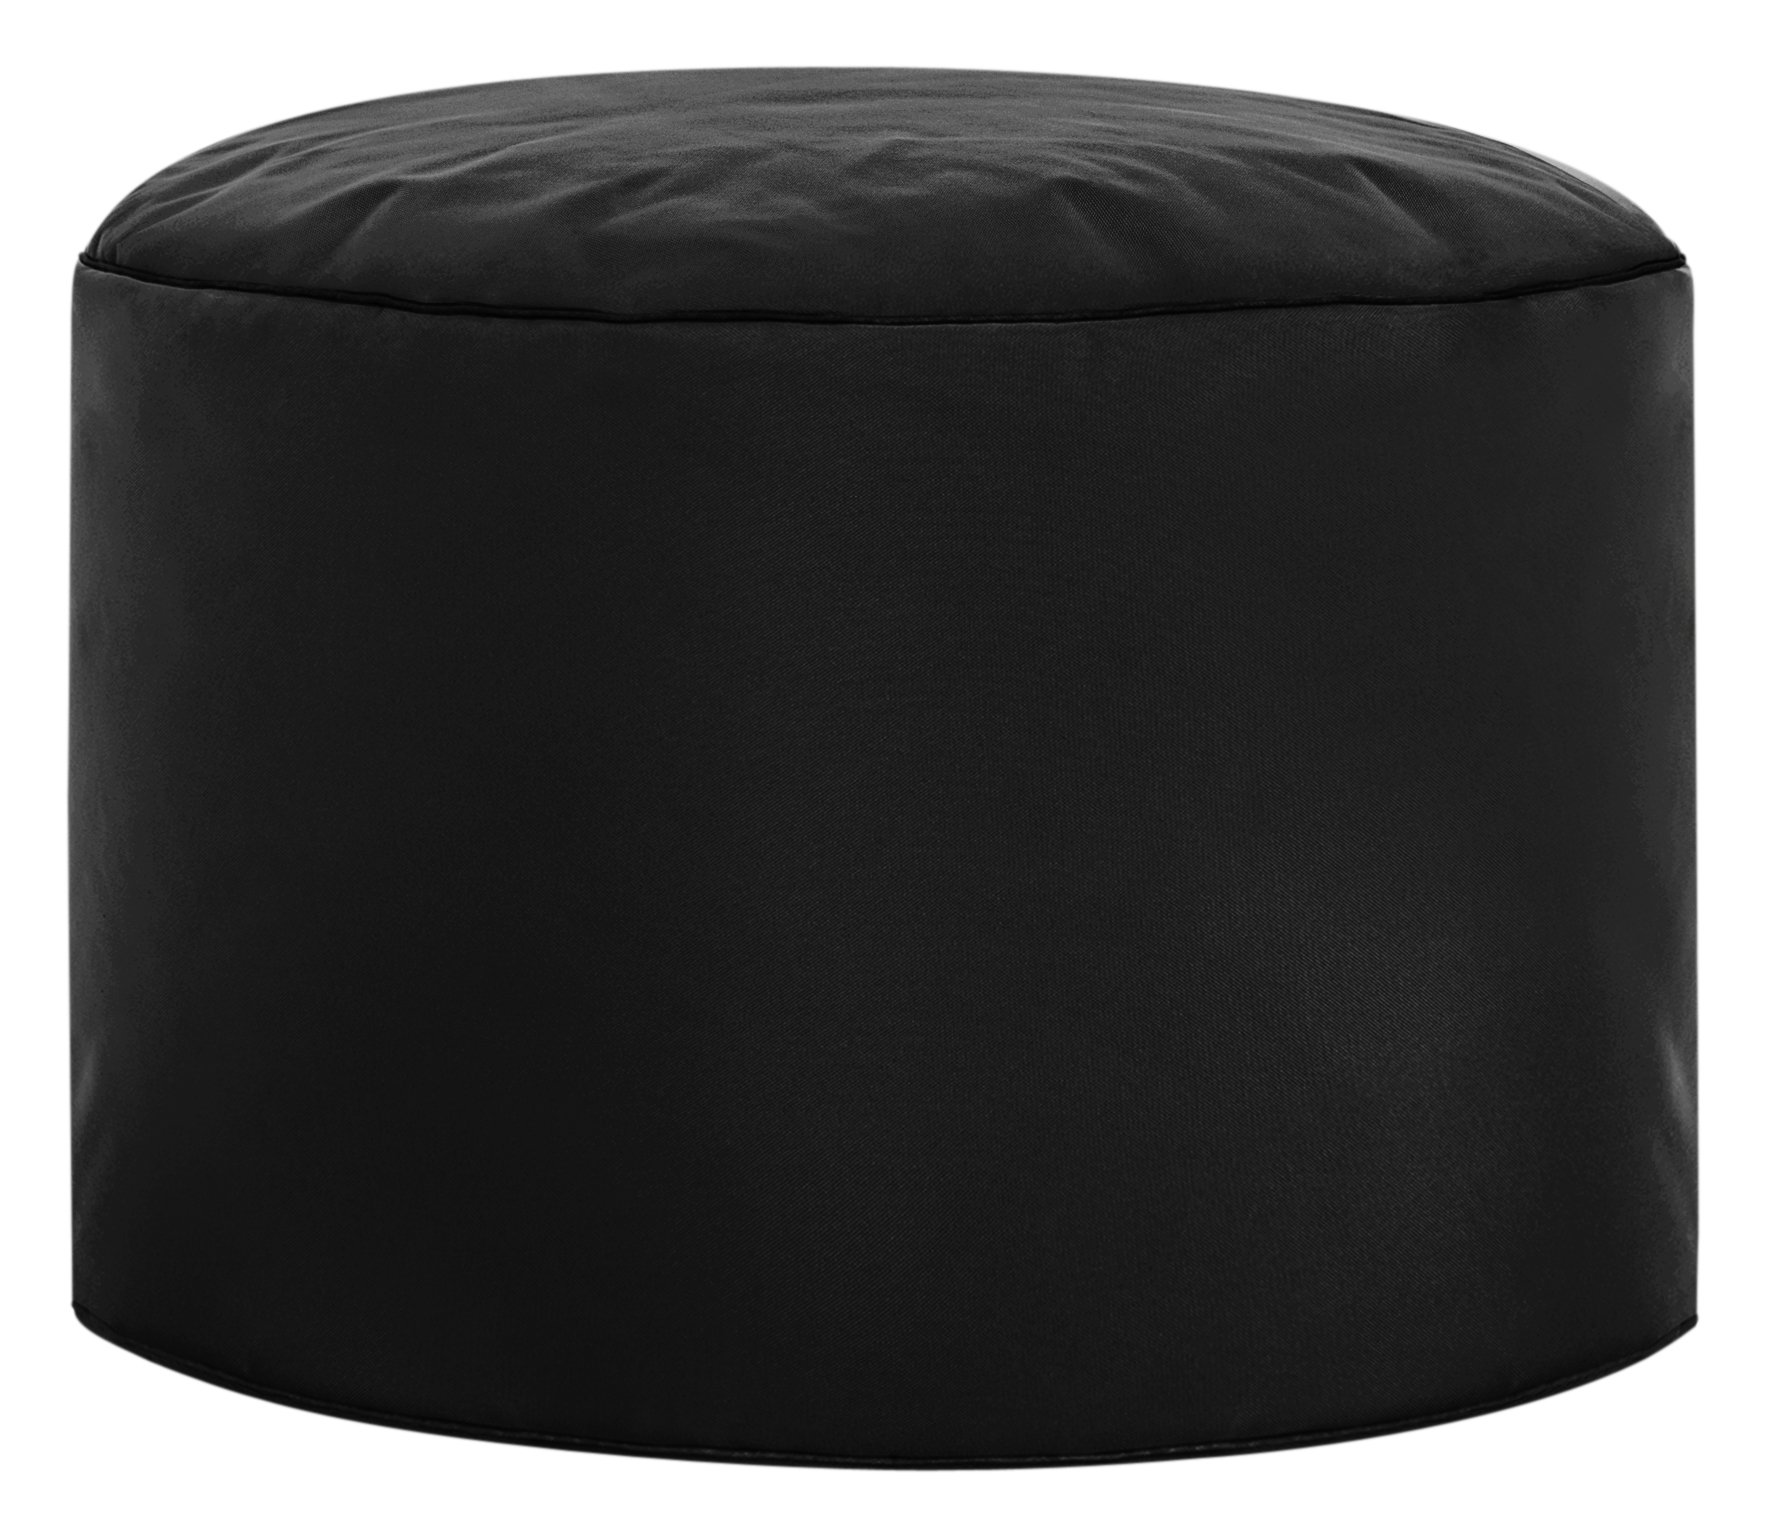 Gouchee Home Brava Pouf Collection Contemporary Polyester Upholstered Round Pouf/Ottoman, Black